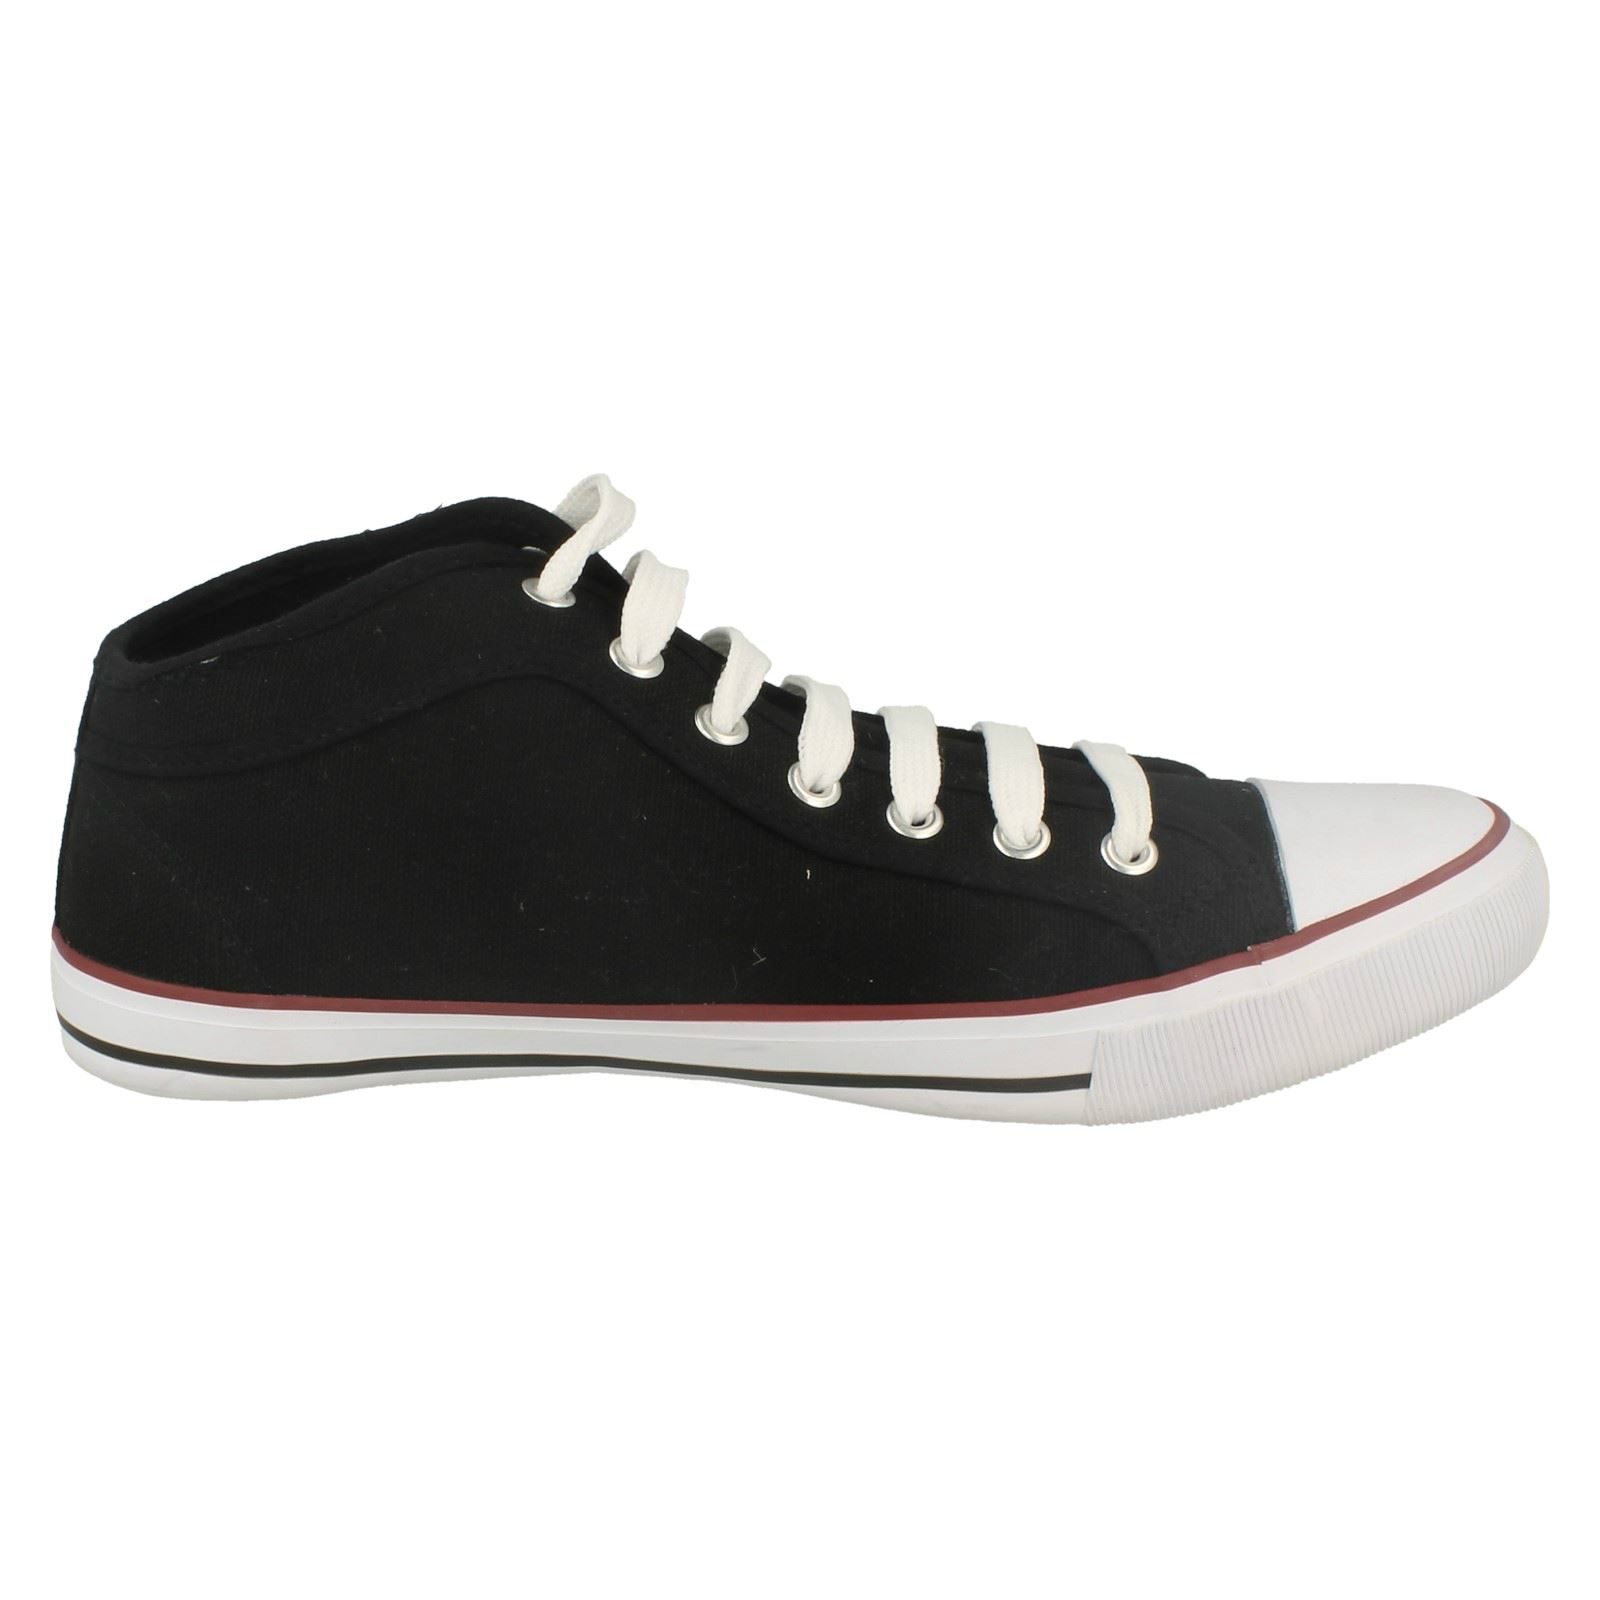 Mens Spot On Flat Lace Up Casual Pumps